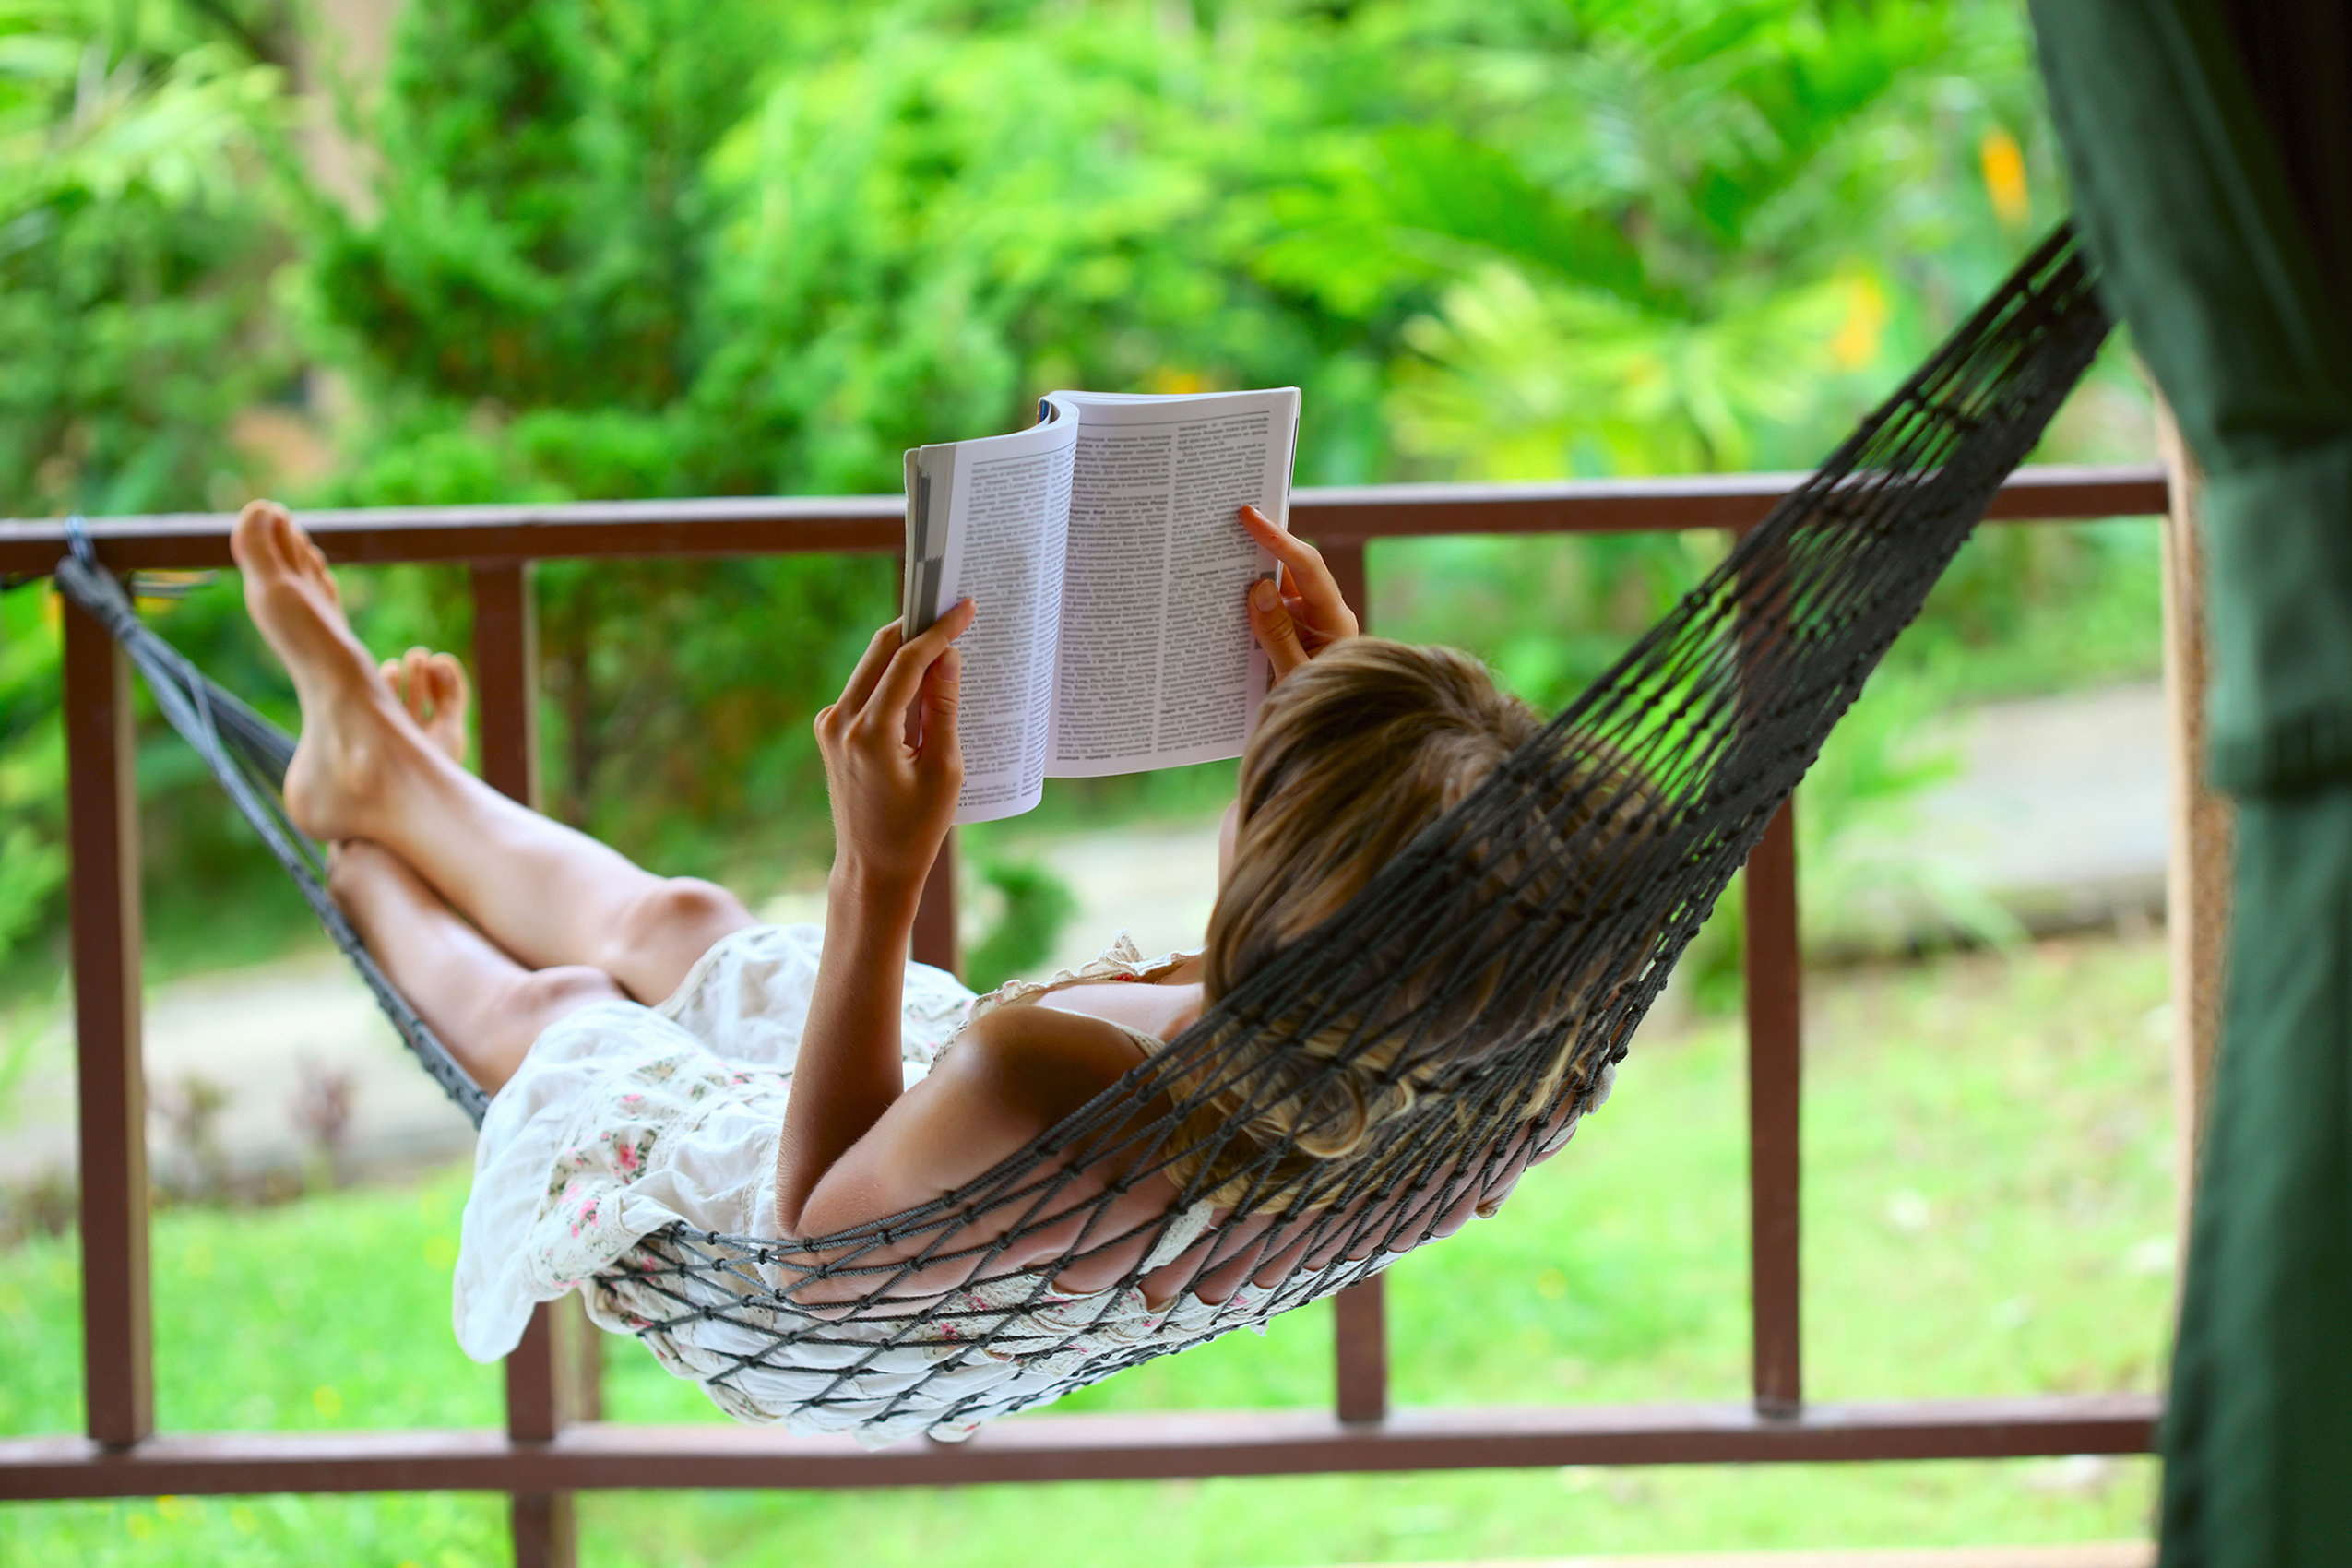 How to relax without alcohol - based on your primary sense